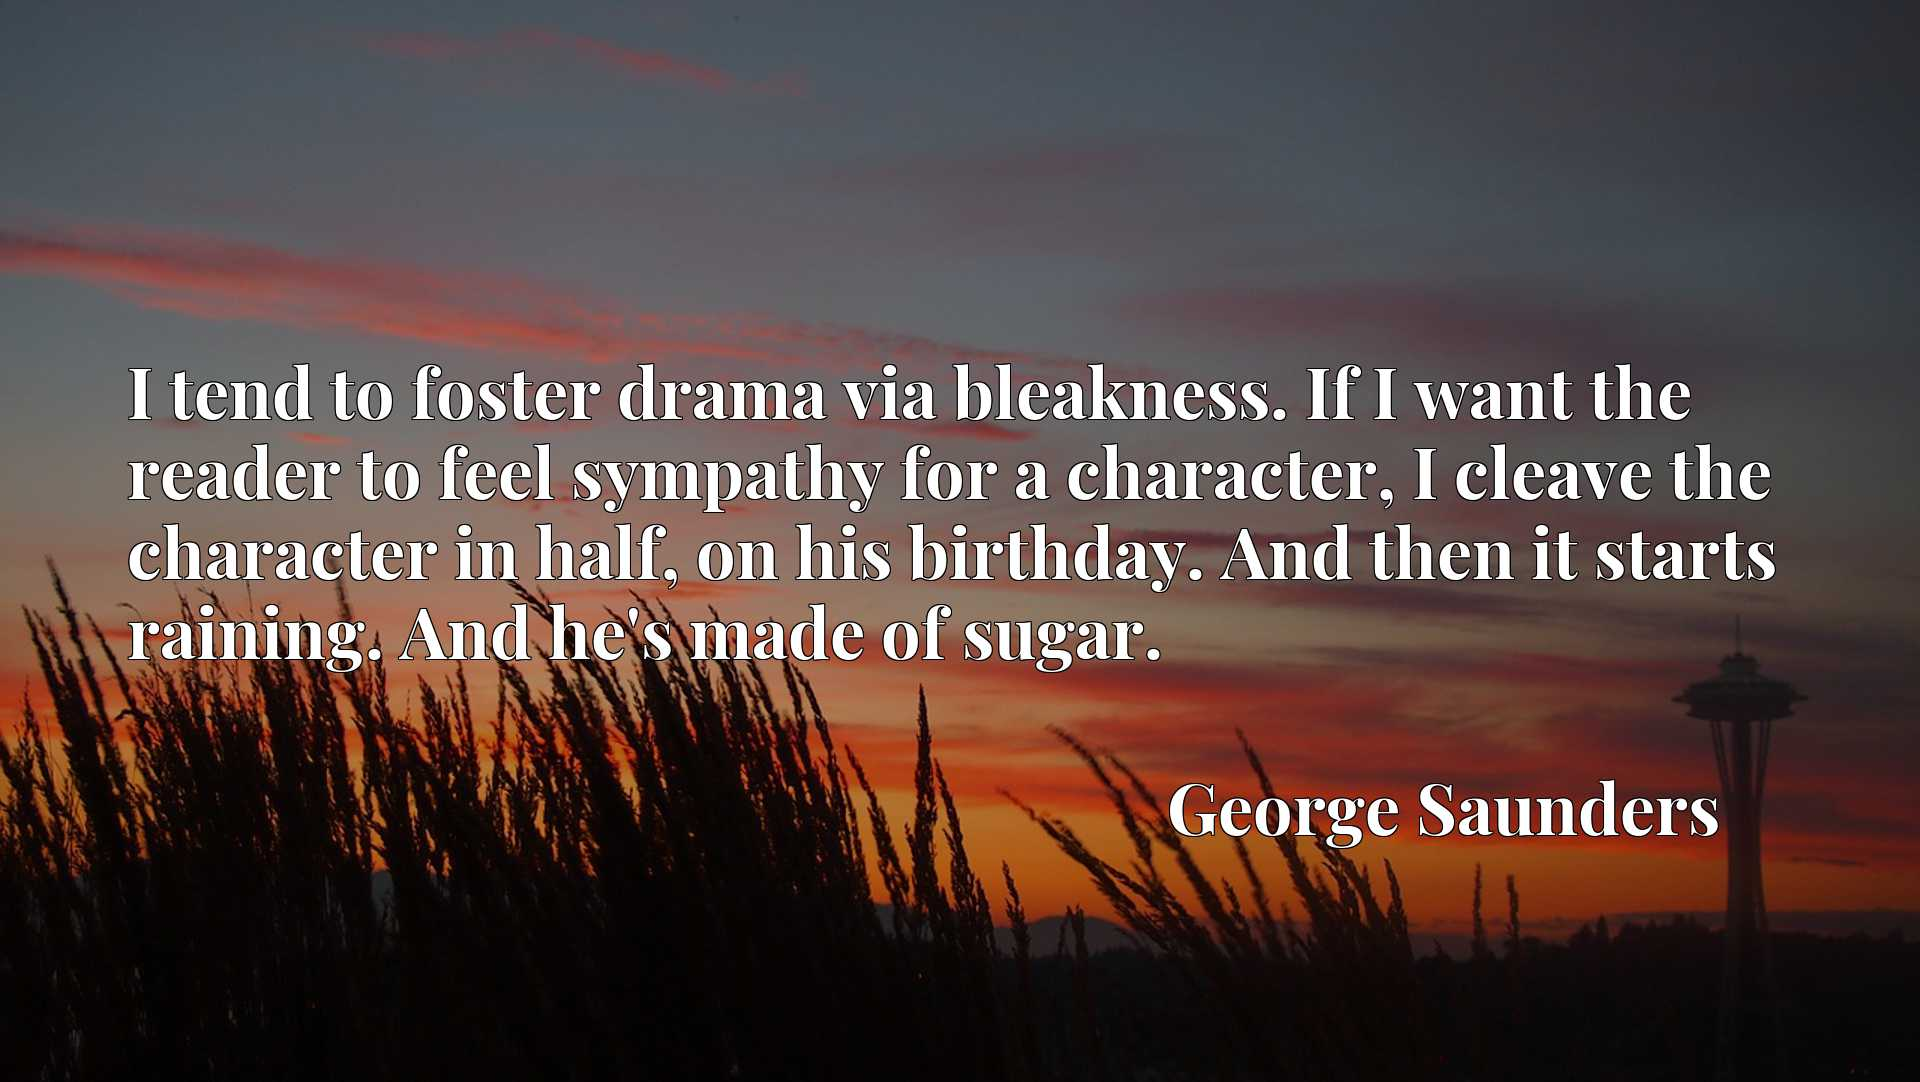 I tend to foster drama via bleakness. If I want the reader to feel sympathy for a character, I cleave the character in half, on his birthday. And then it starts raining. And he's made of sugar.